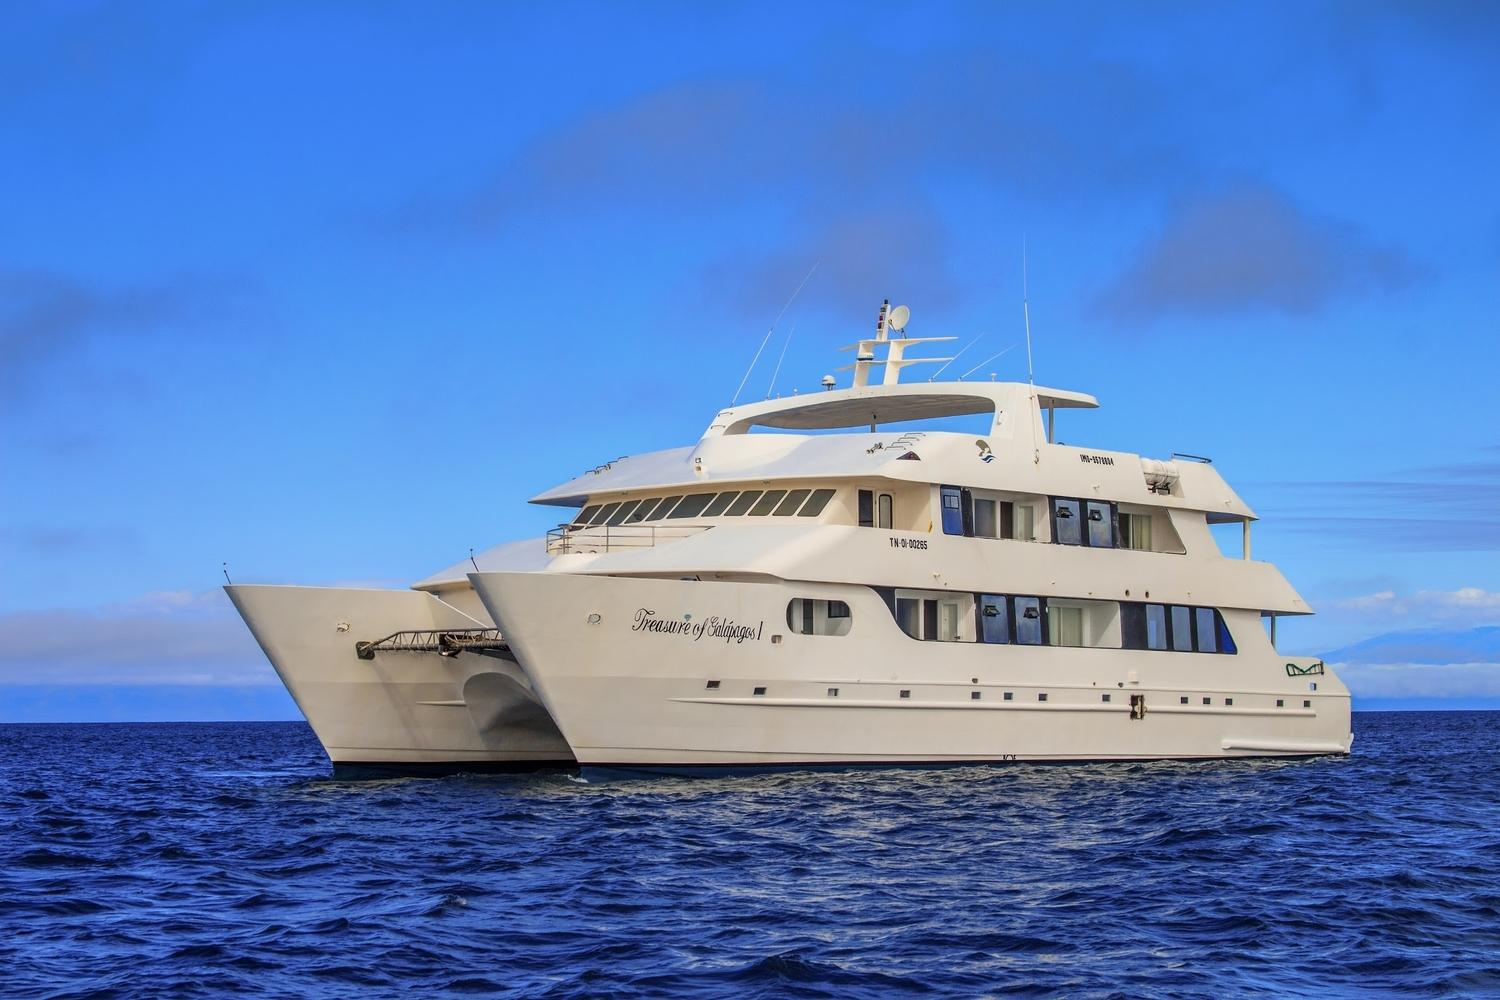 Cruise around the far-reaching points of the Galapagos Islands